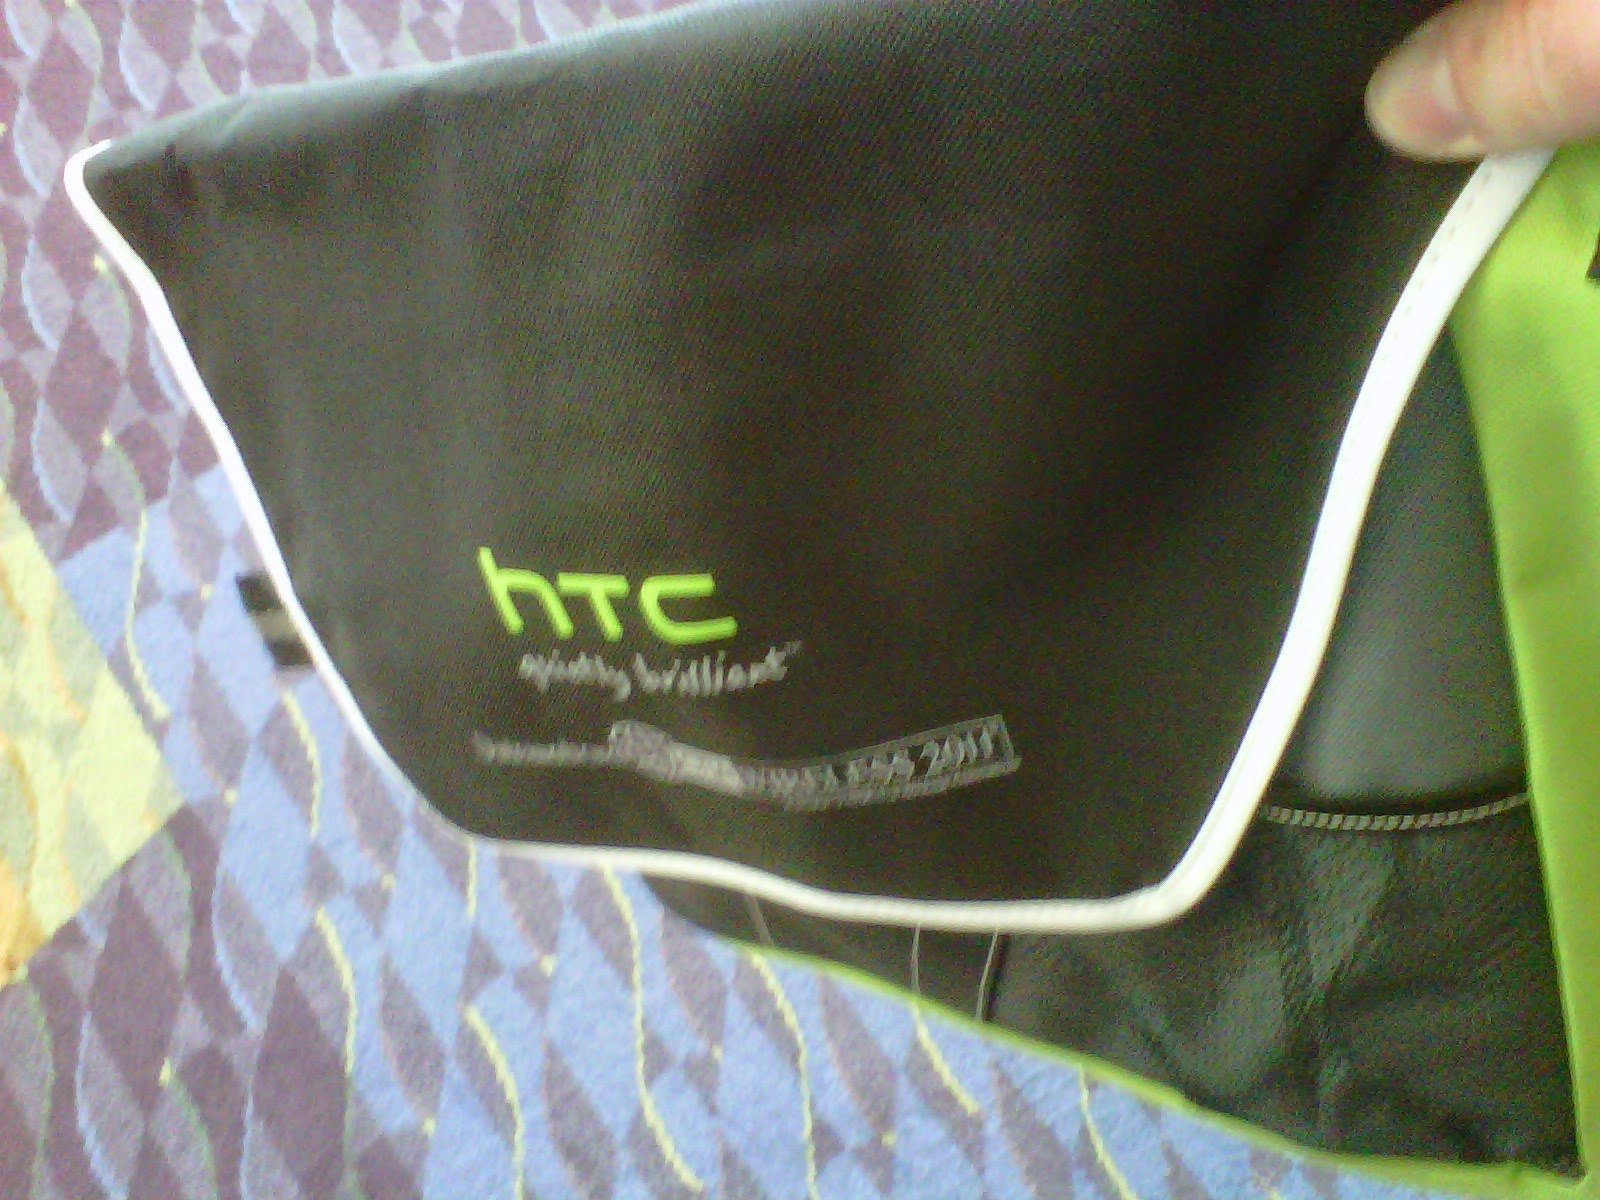 HTC, wholesale, supplier, US, Wildfire S, physical stock, fly and buy,